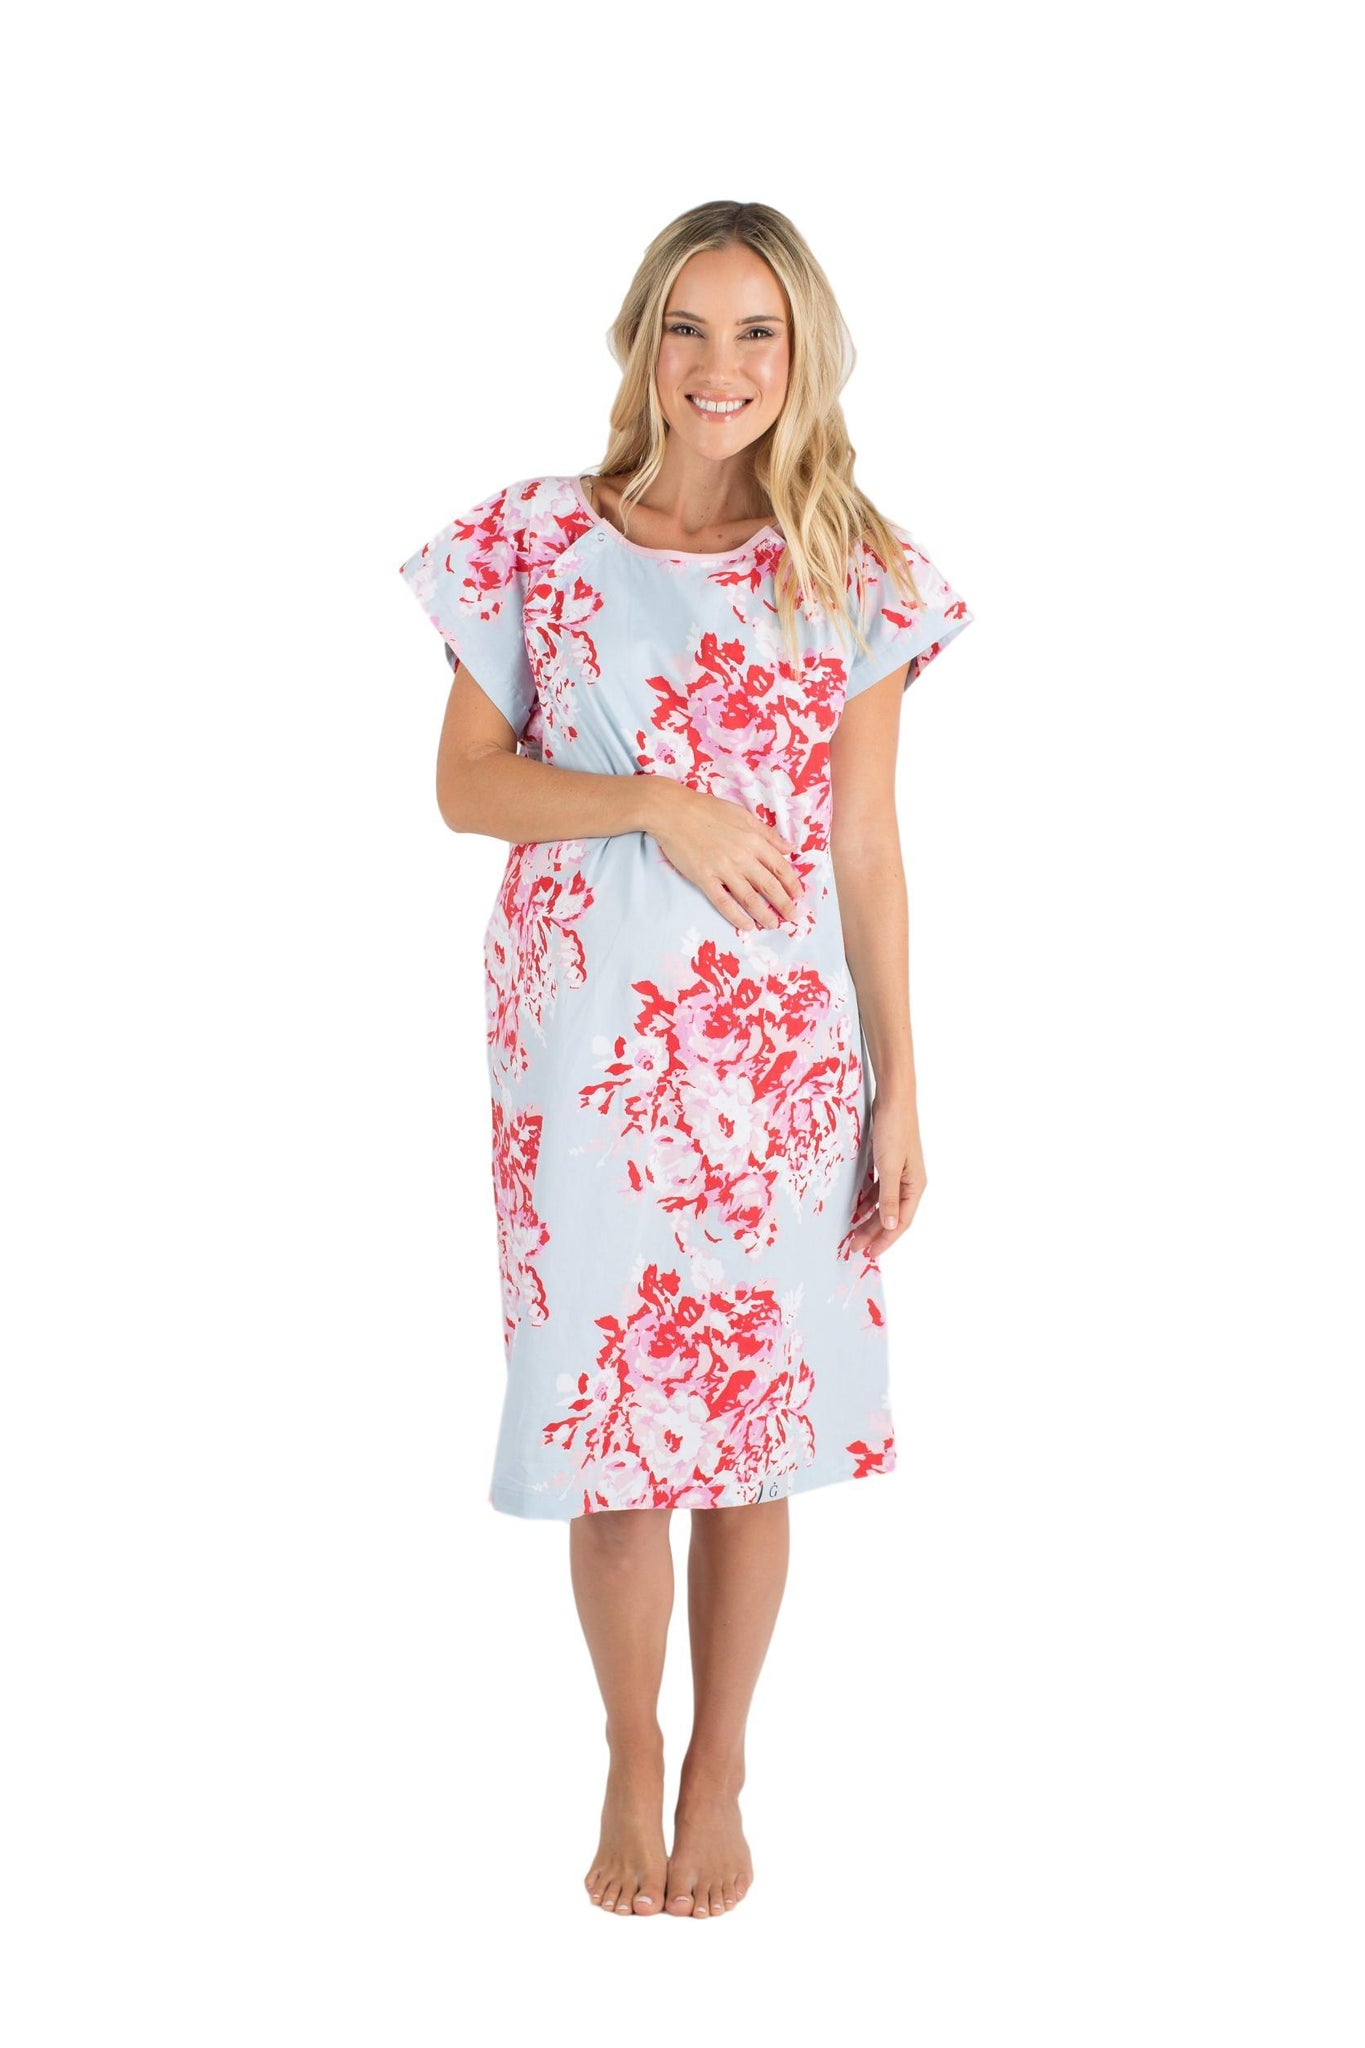 45c549edb1f2c Mae Gownie Maternity Delivery Labor Hospital Birthing Gown – Gownies